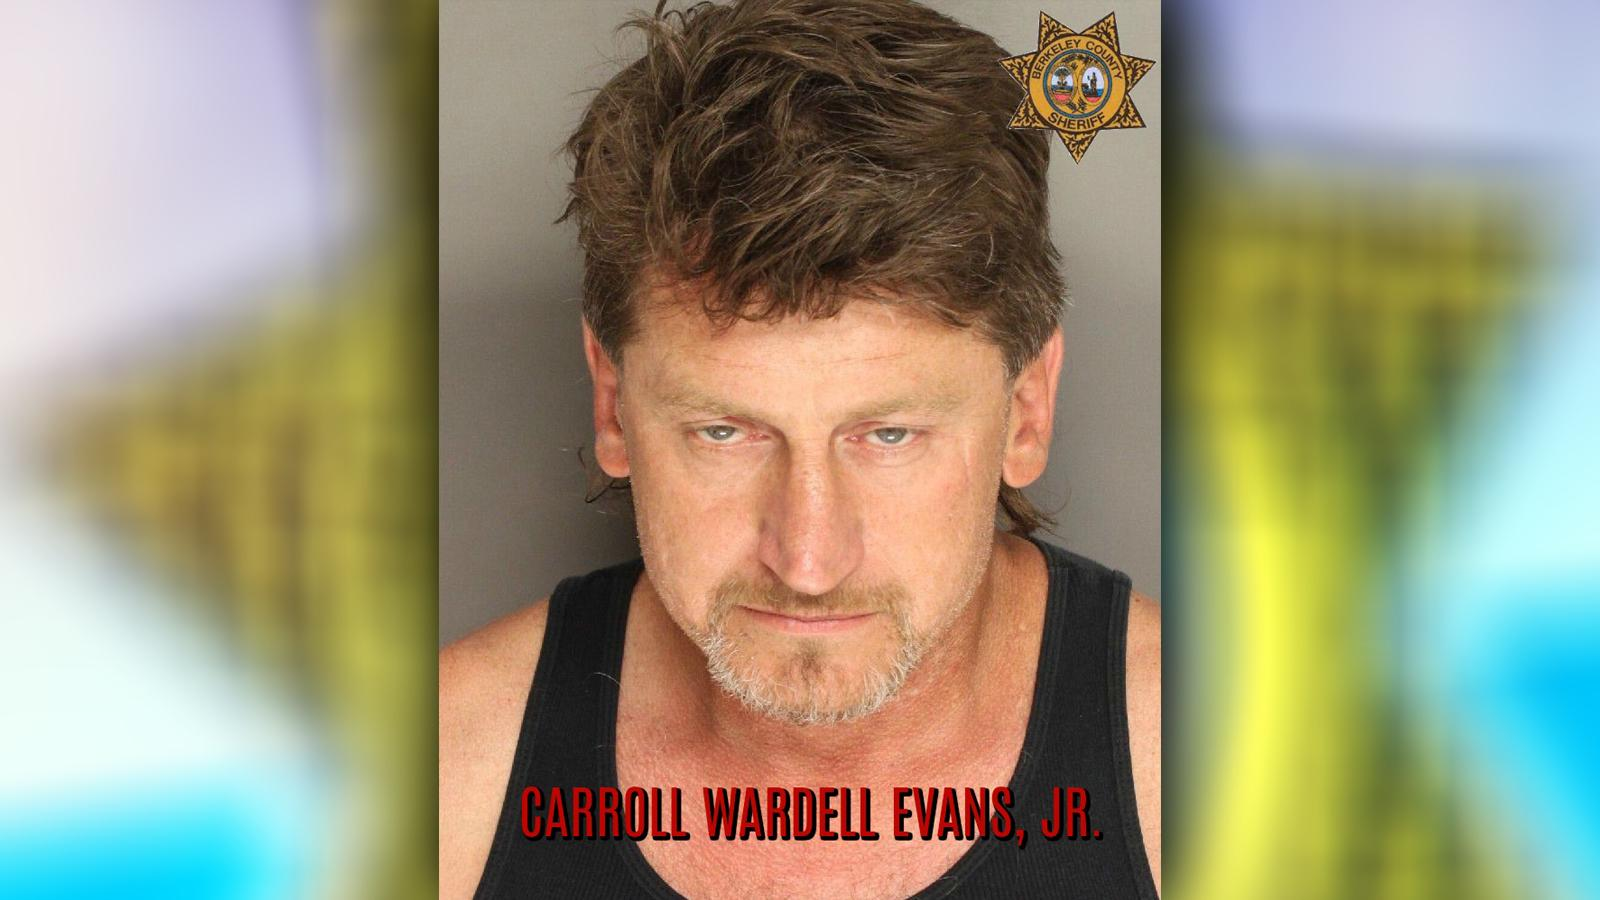 •	Carroll Wardell Evans, Jr. Possession of Meth